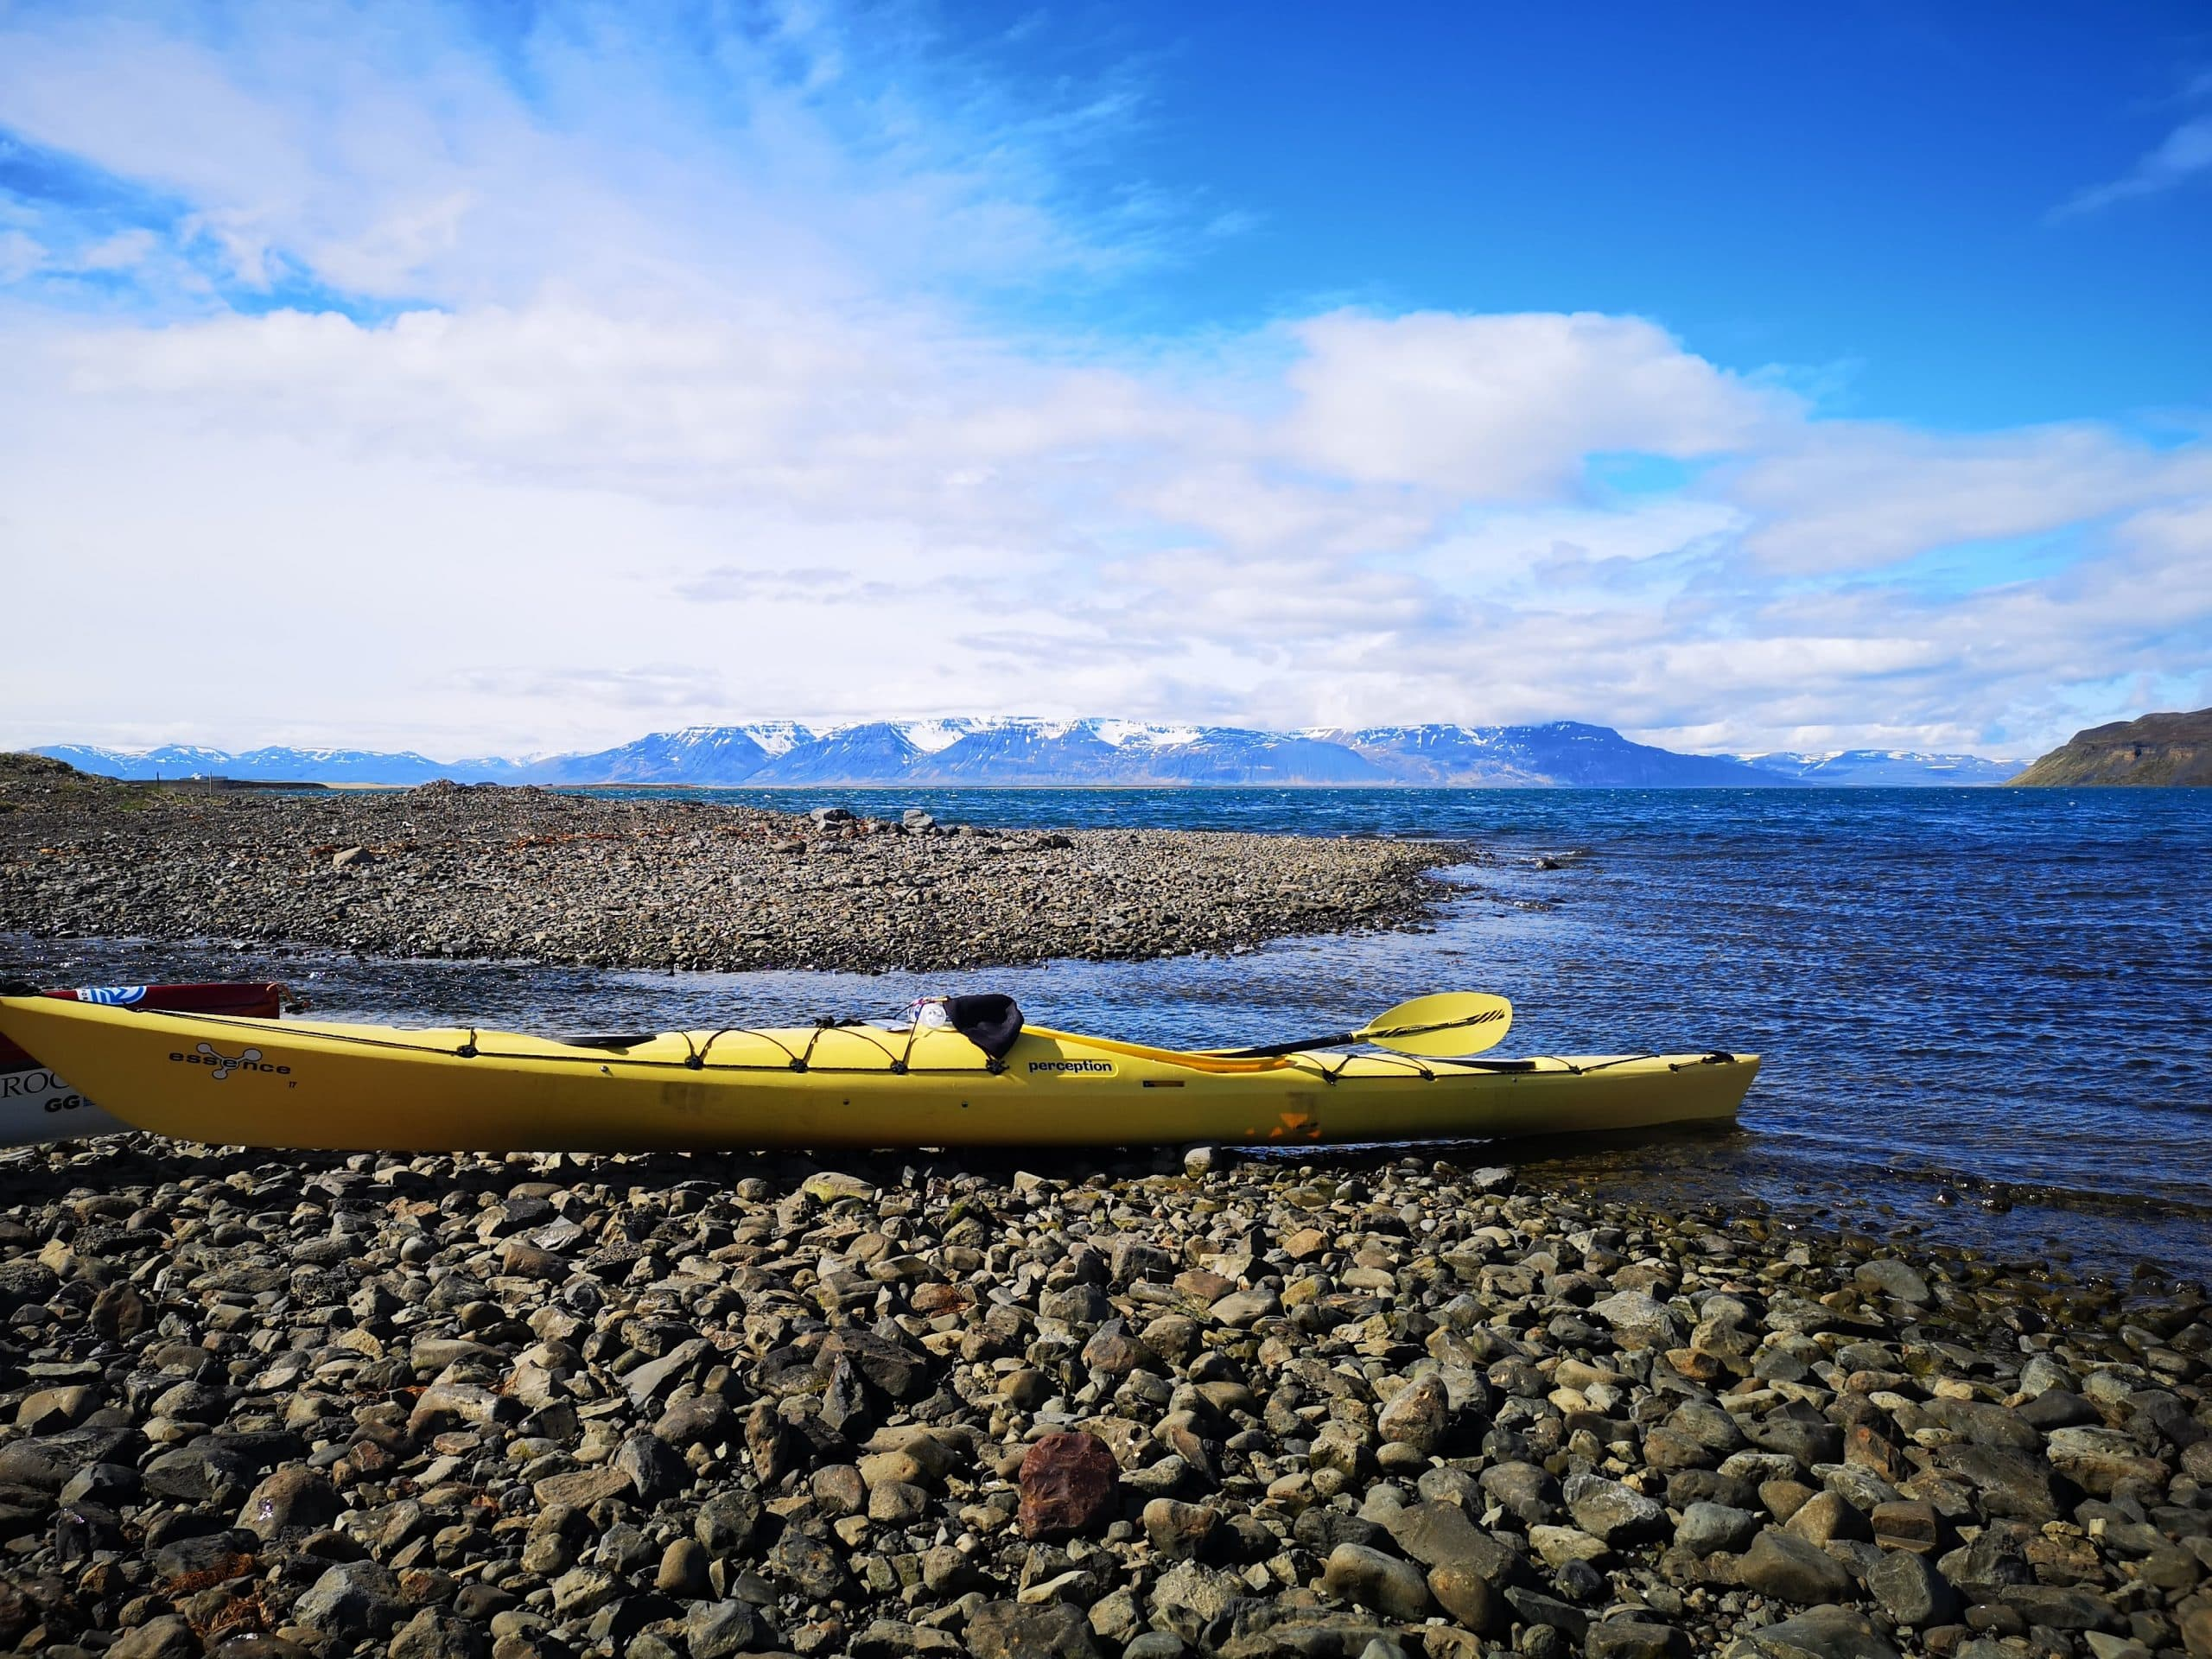 A view of a kayak on a beach, North Iceland's mountains in the background.